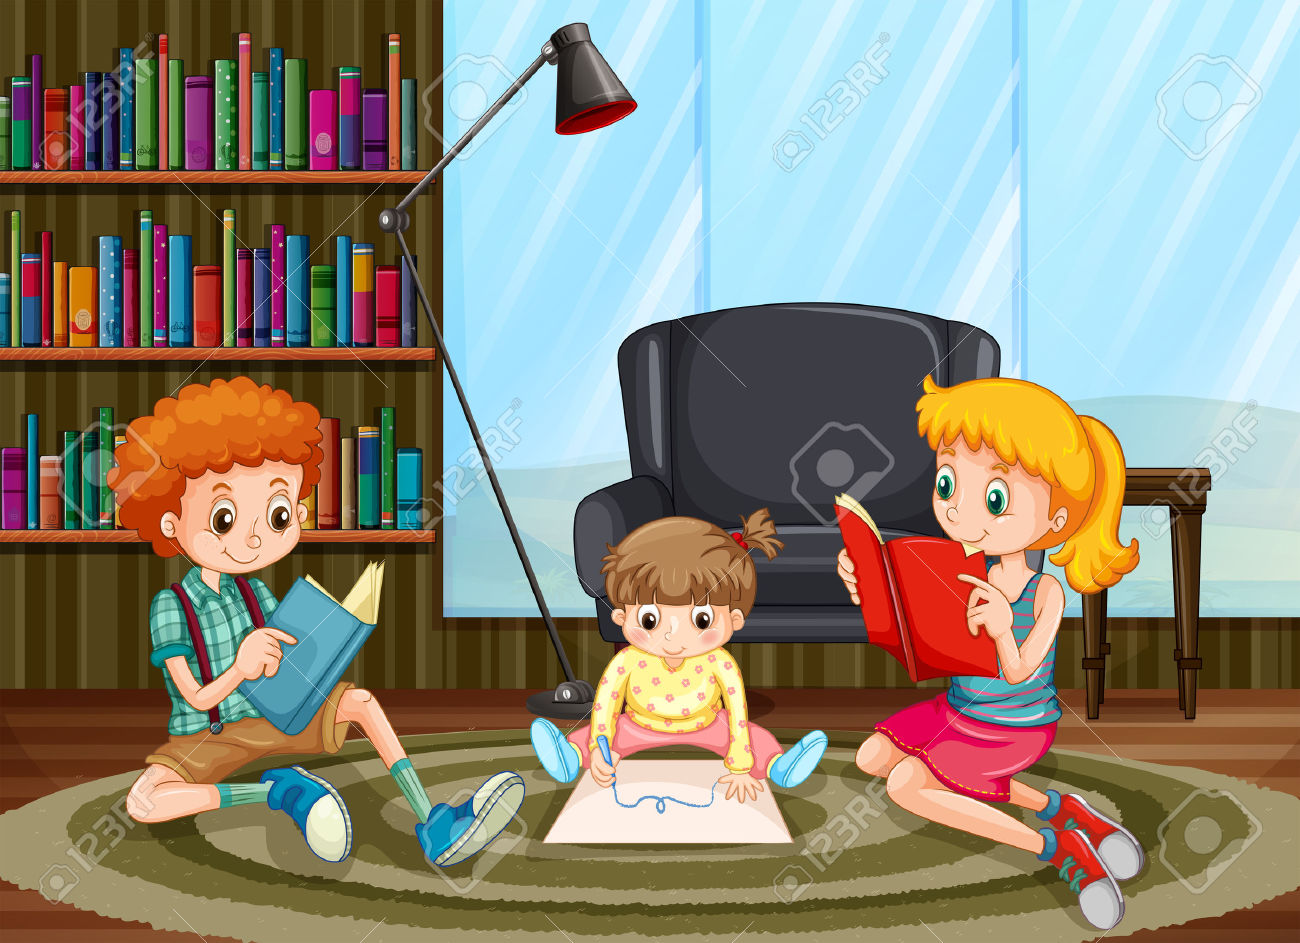 Reading room clipart #12